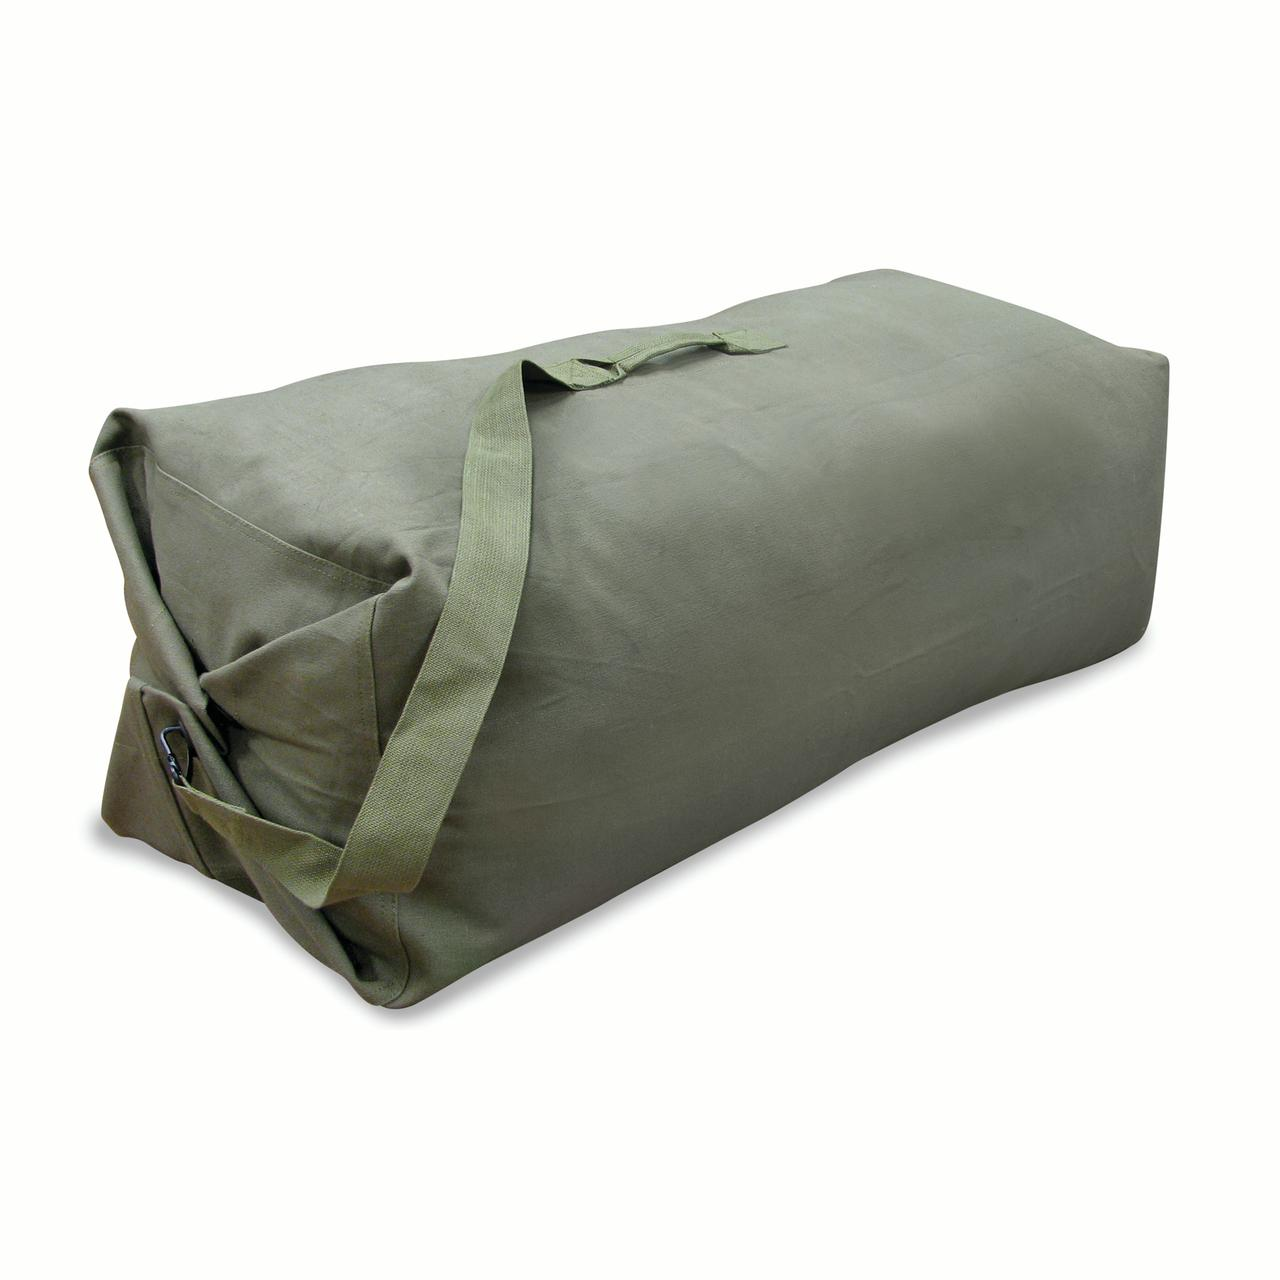 """Stansport Duffel Bag with Strap - O.D. - 42"""" x 12"""" x 12"""